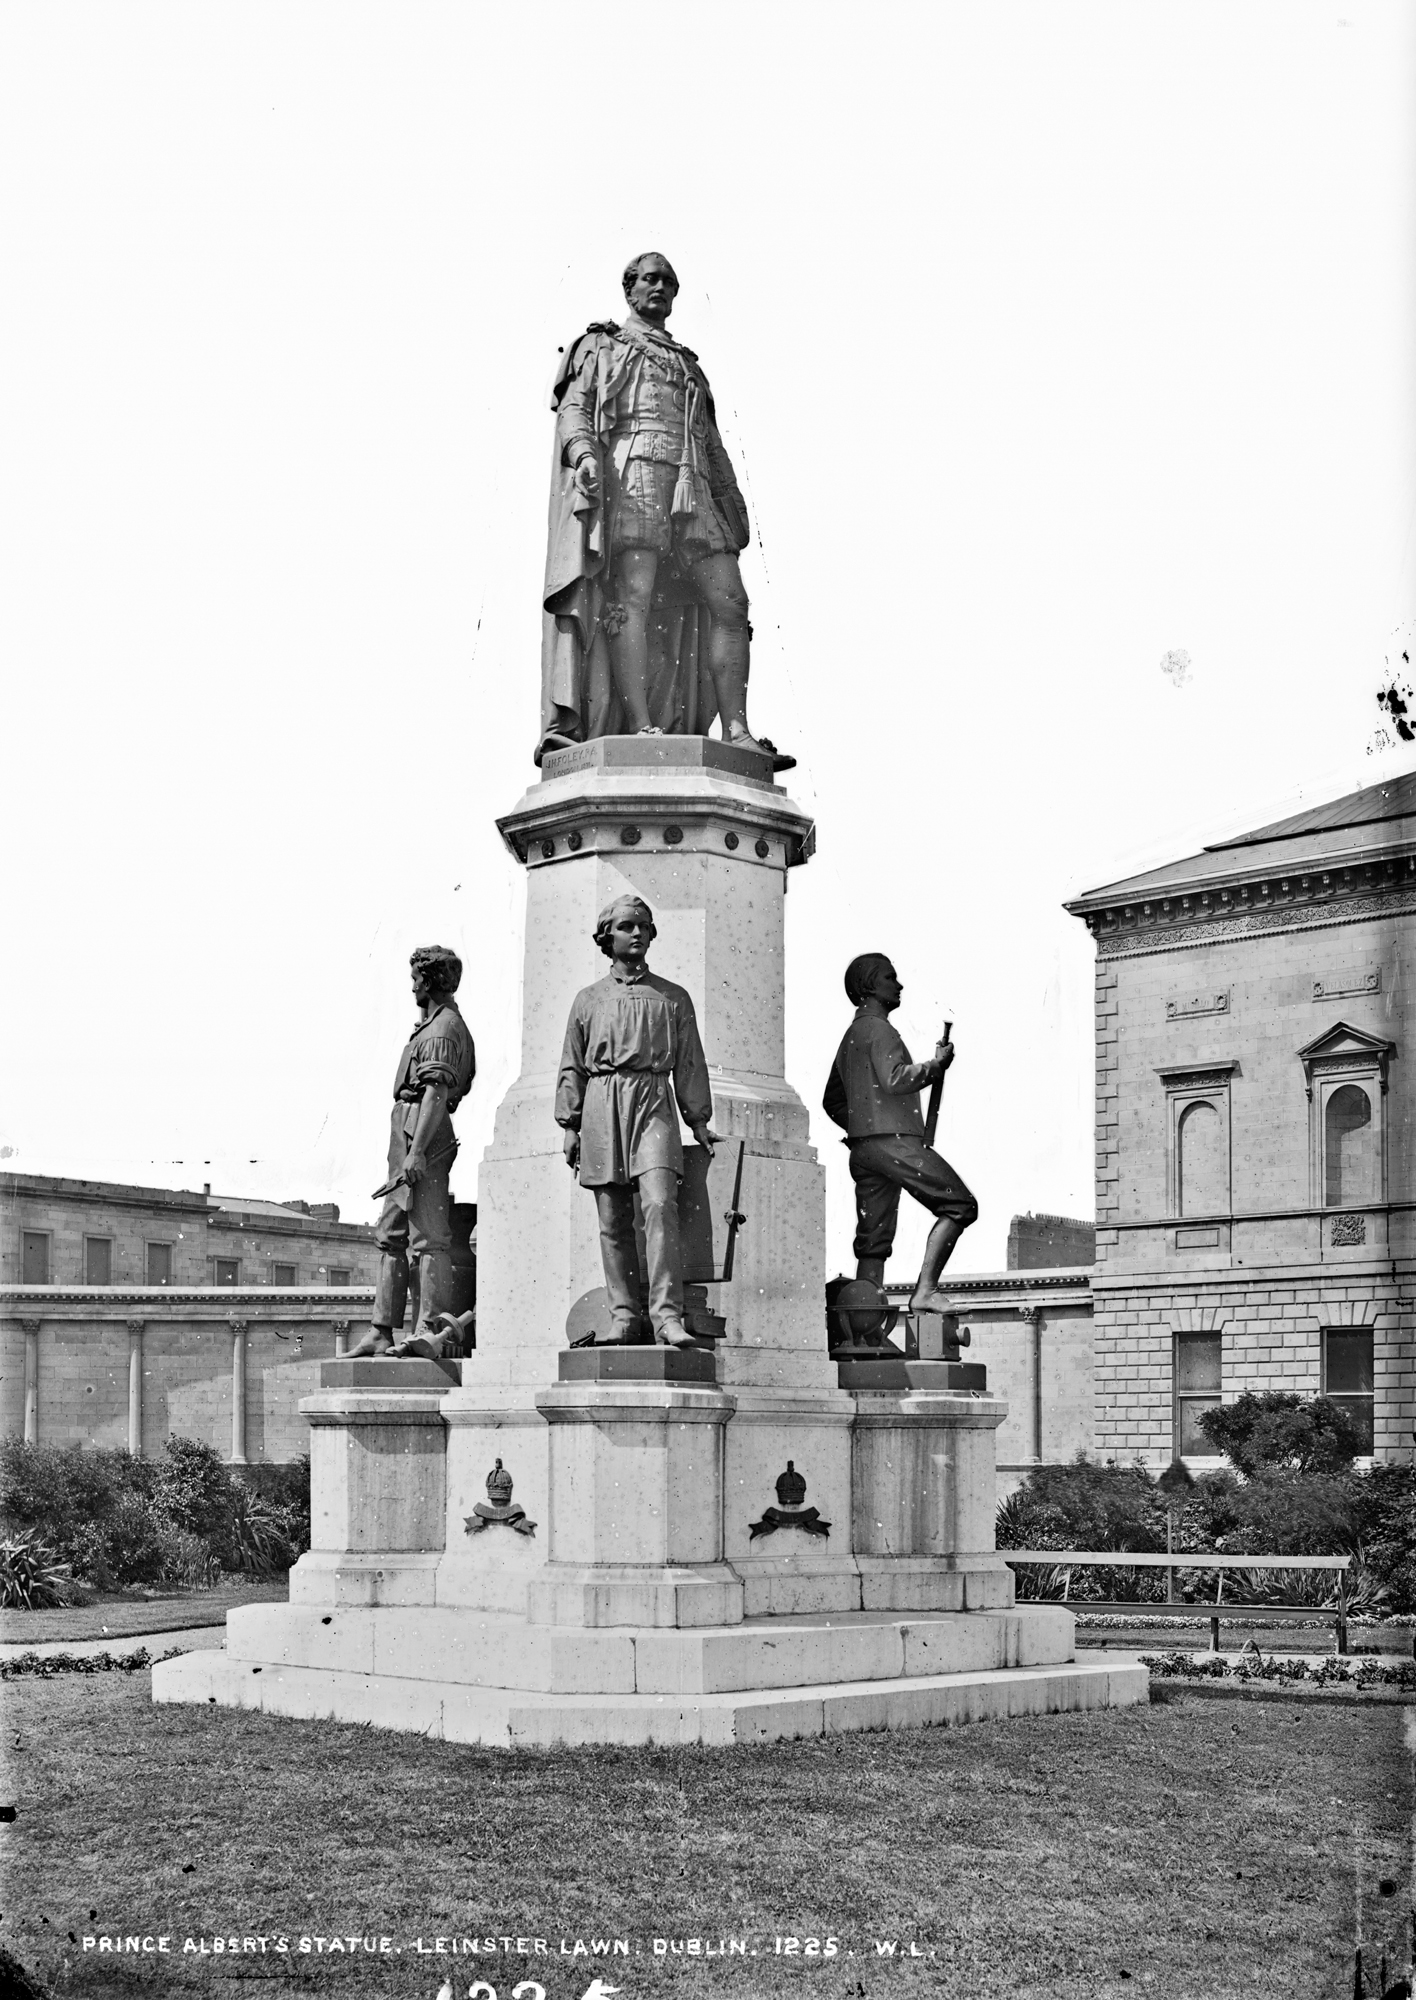 Prince Albert's statue, Leinster Lawn